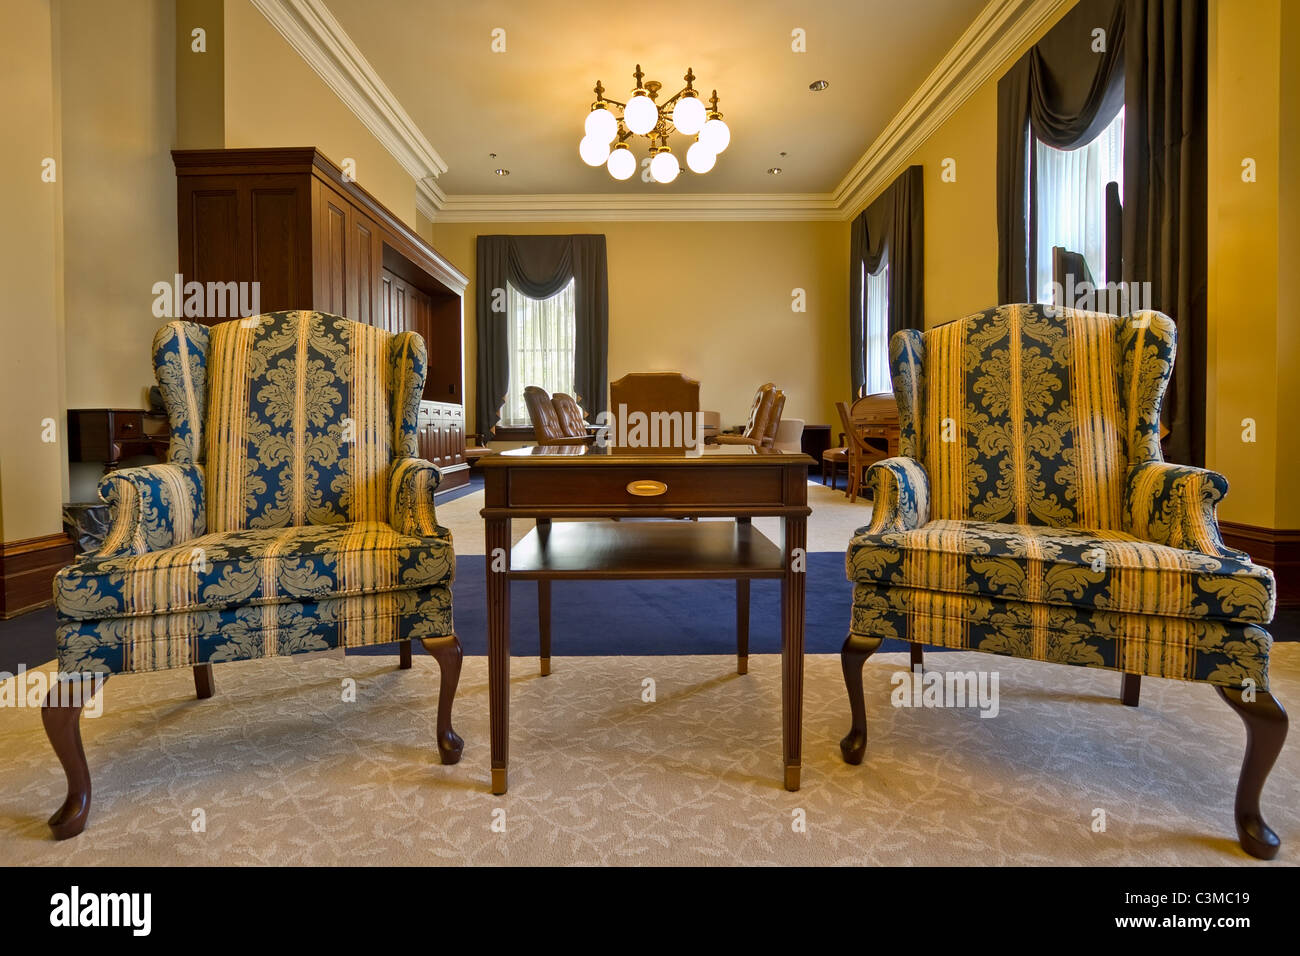 Antique Furniture in Historic Building Conference Room - Stock Image